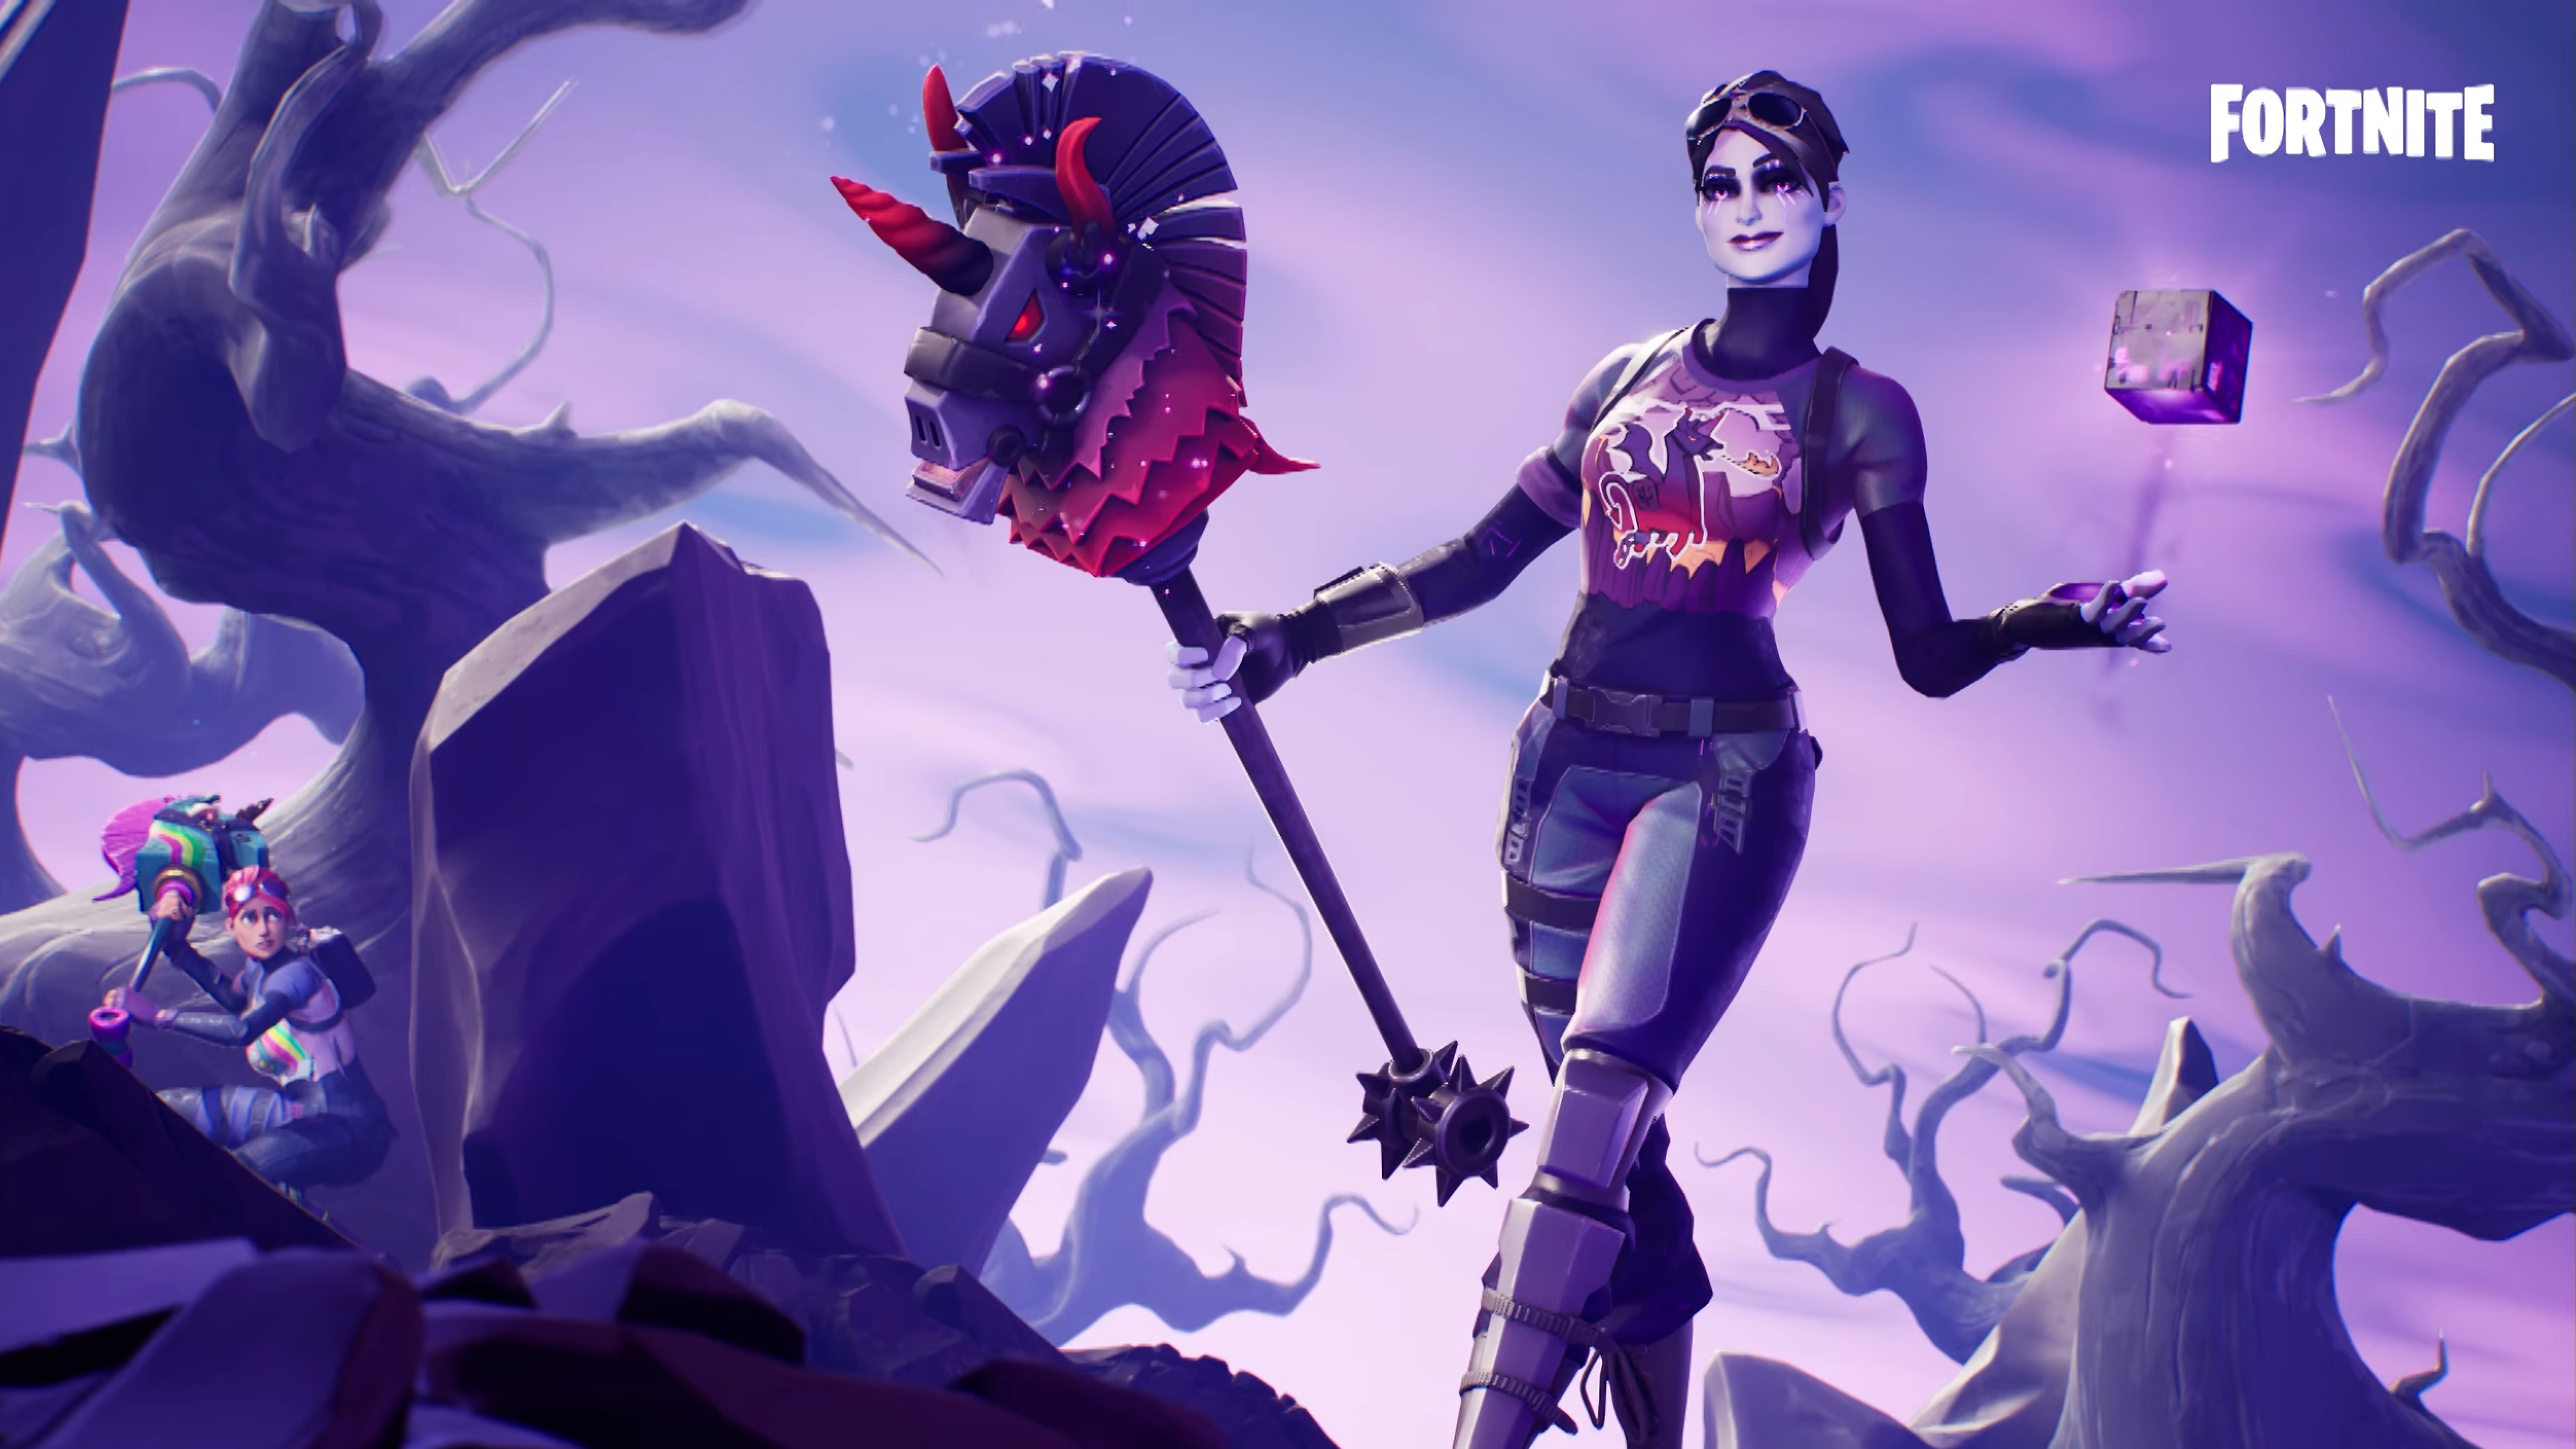 Wallpaper 4k Dark Bomber Fortnite Season 6 4k 2018 Games Wallpapers